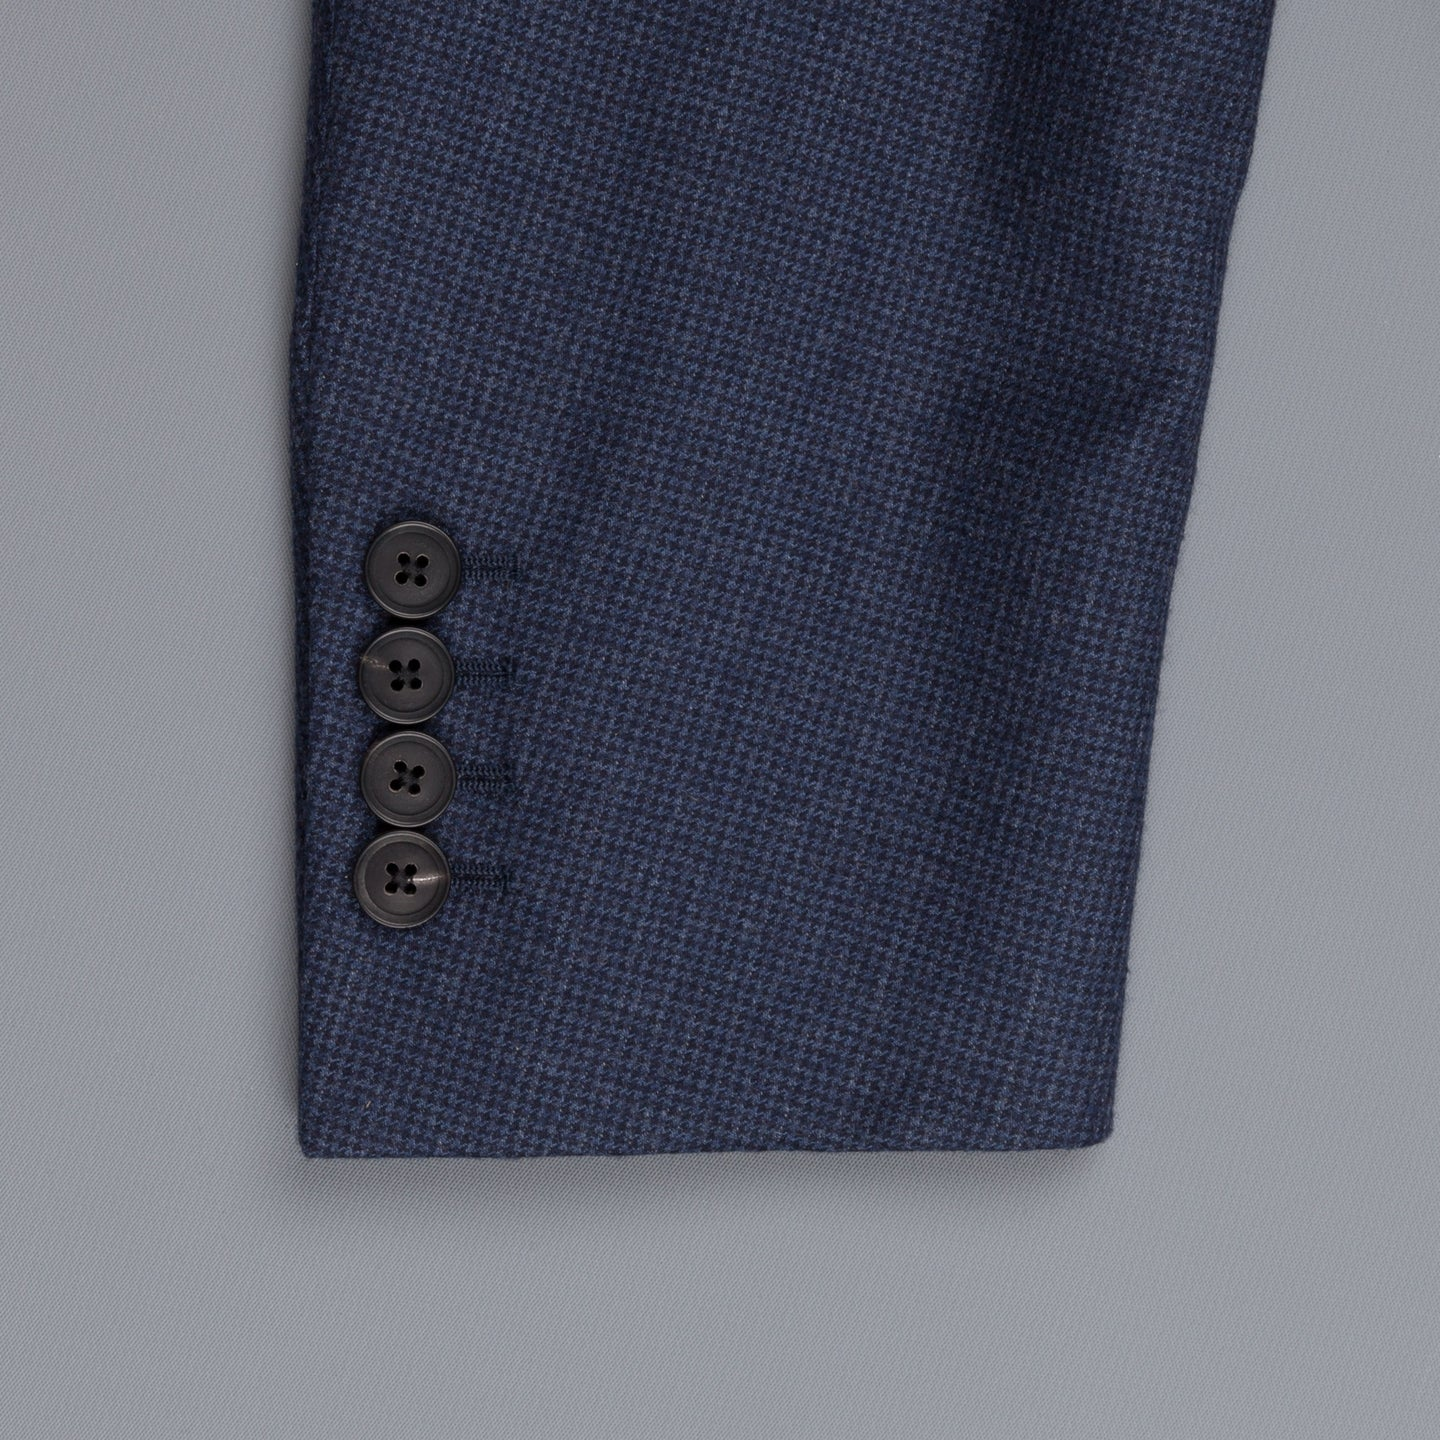 Caruso Nabucco Suit blu wool houndstooth